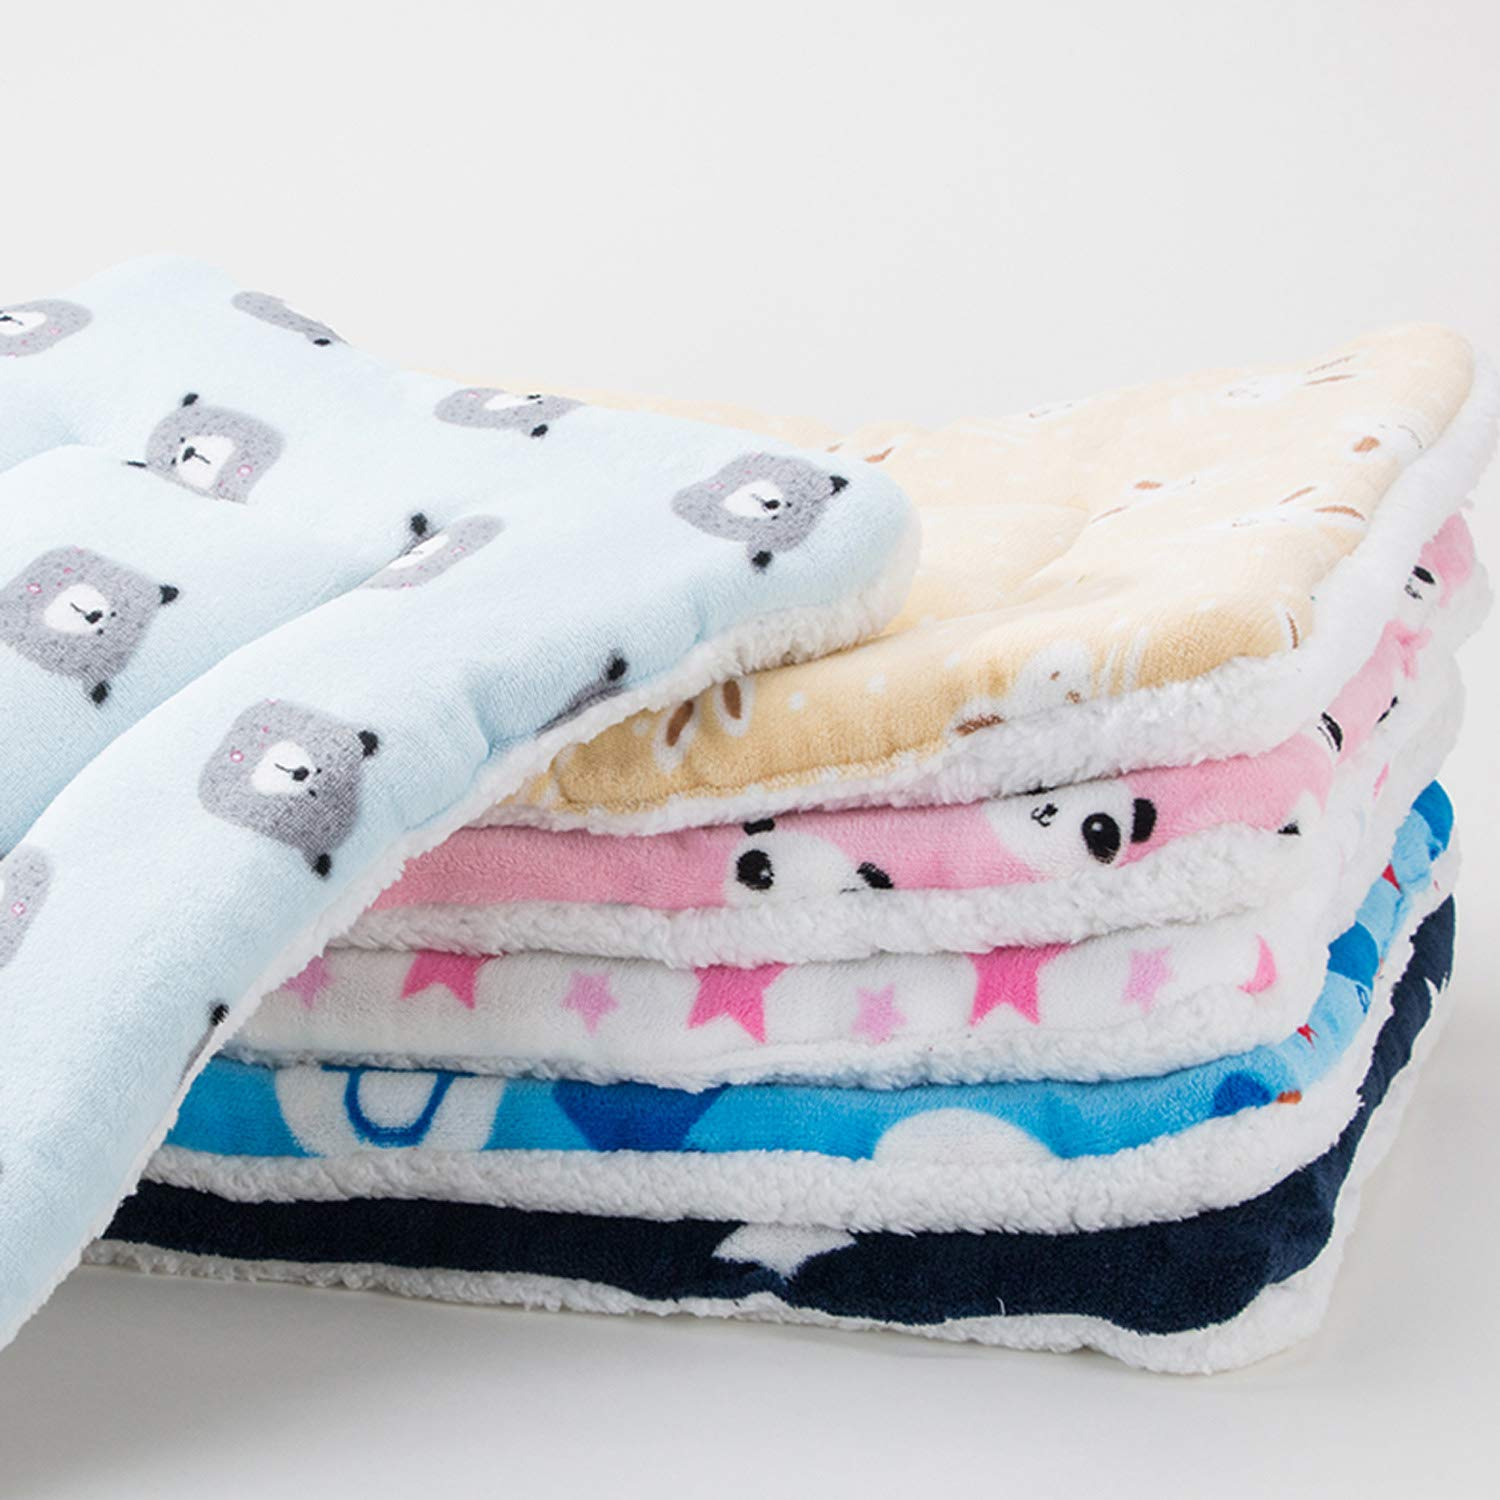 FJWYSANGU Pet Blanket Premium Fluffy Flannel Cushion Soft and Warm Mat for Dogs Cats